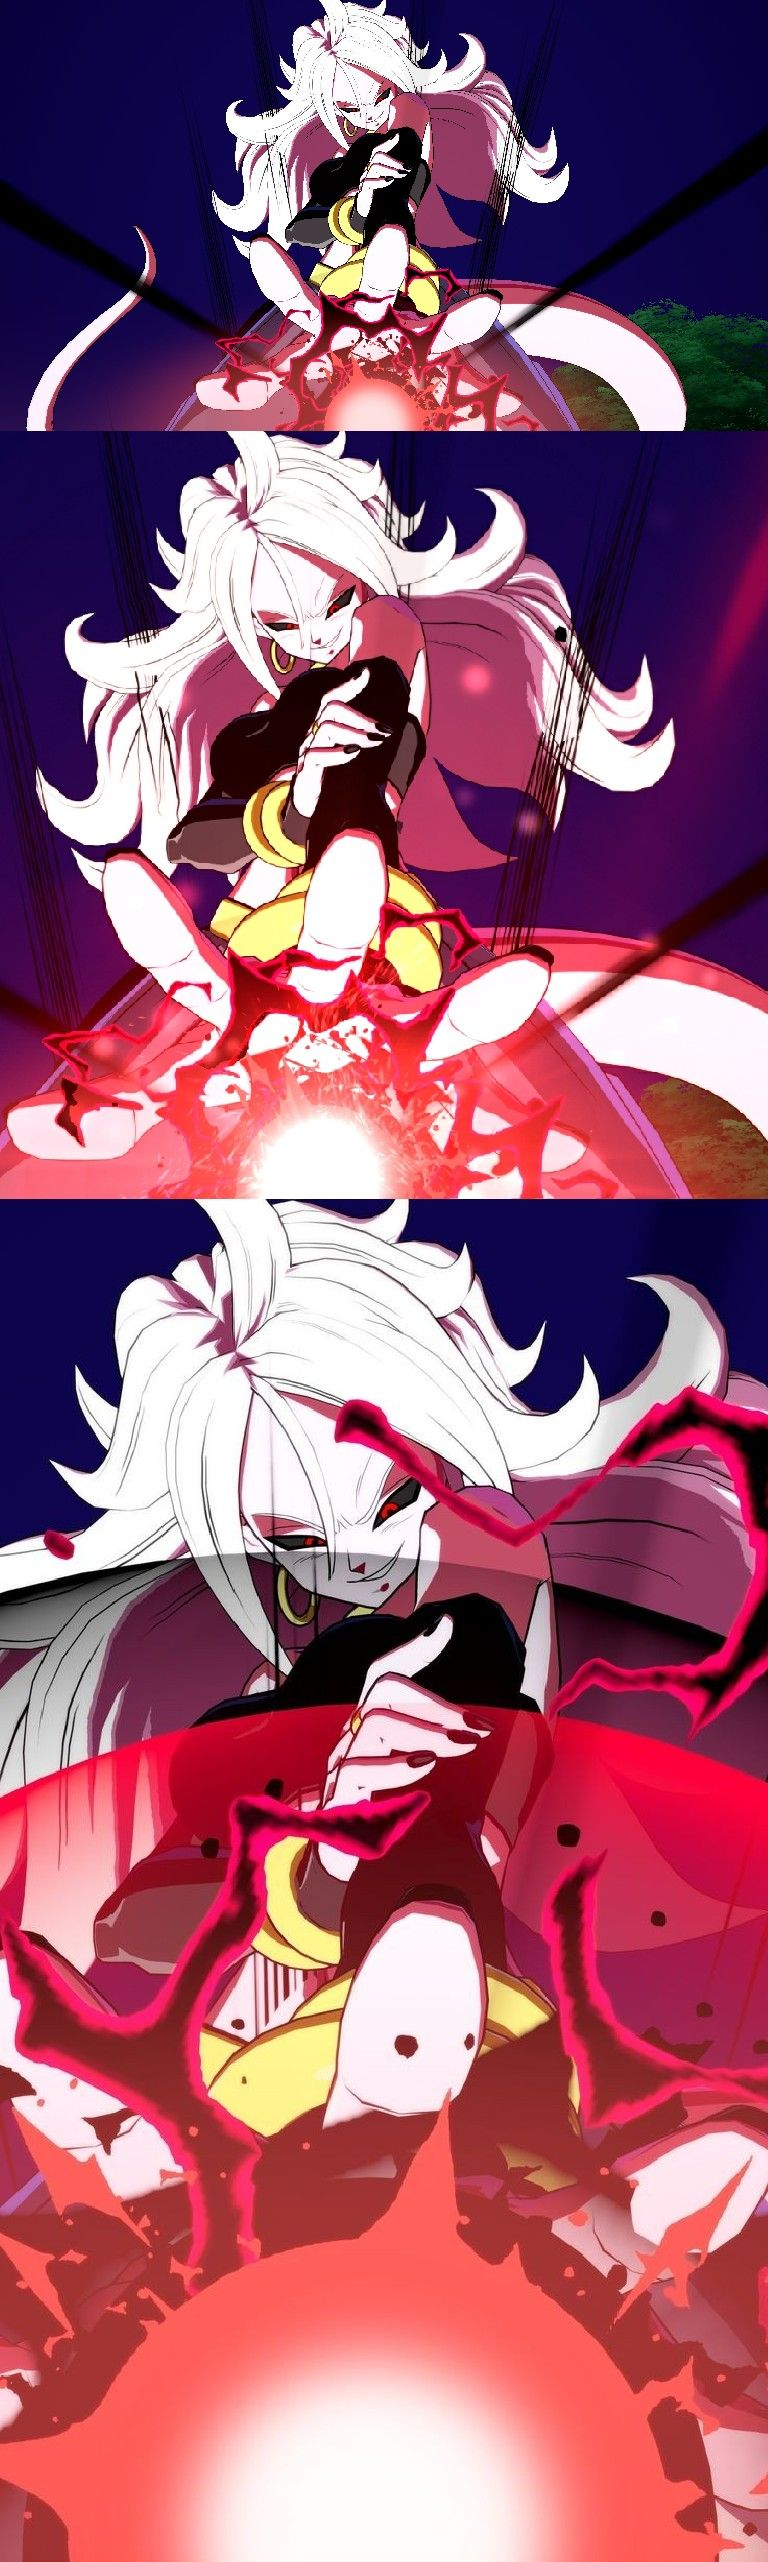 Evil Android 21 (With images) Female dragon, Anime